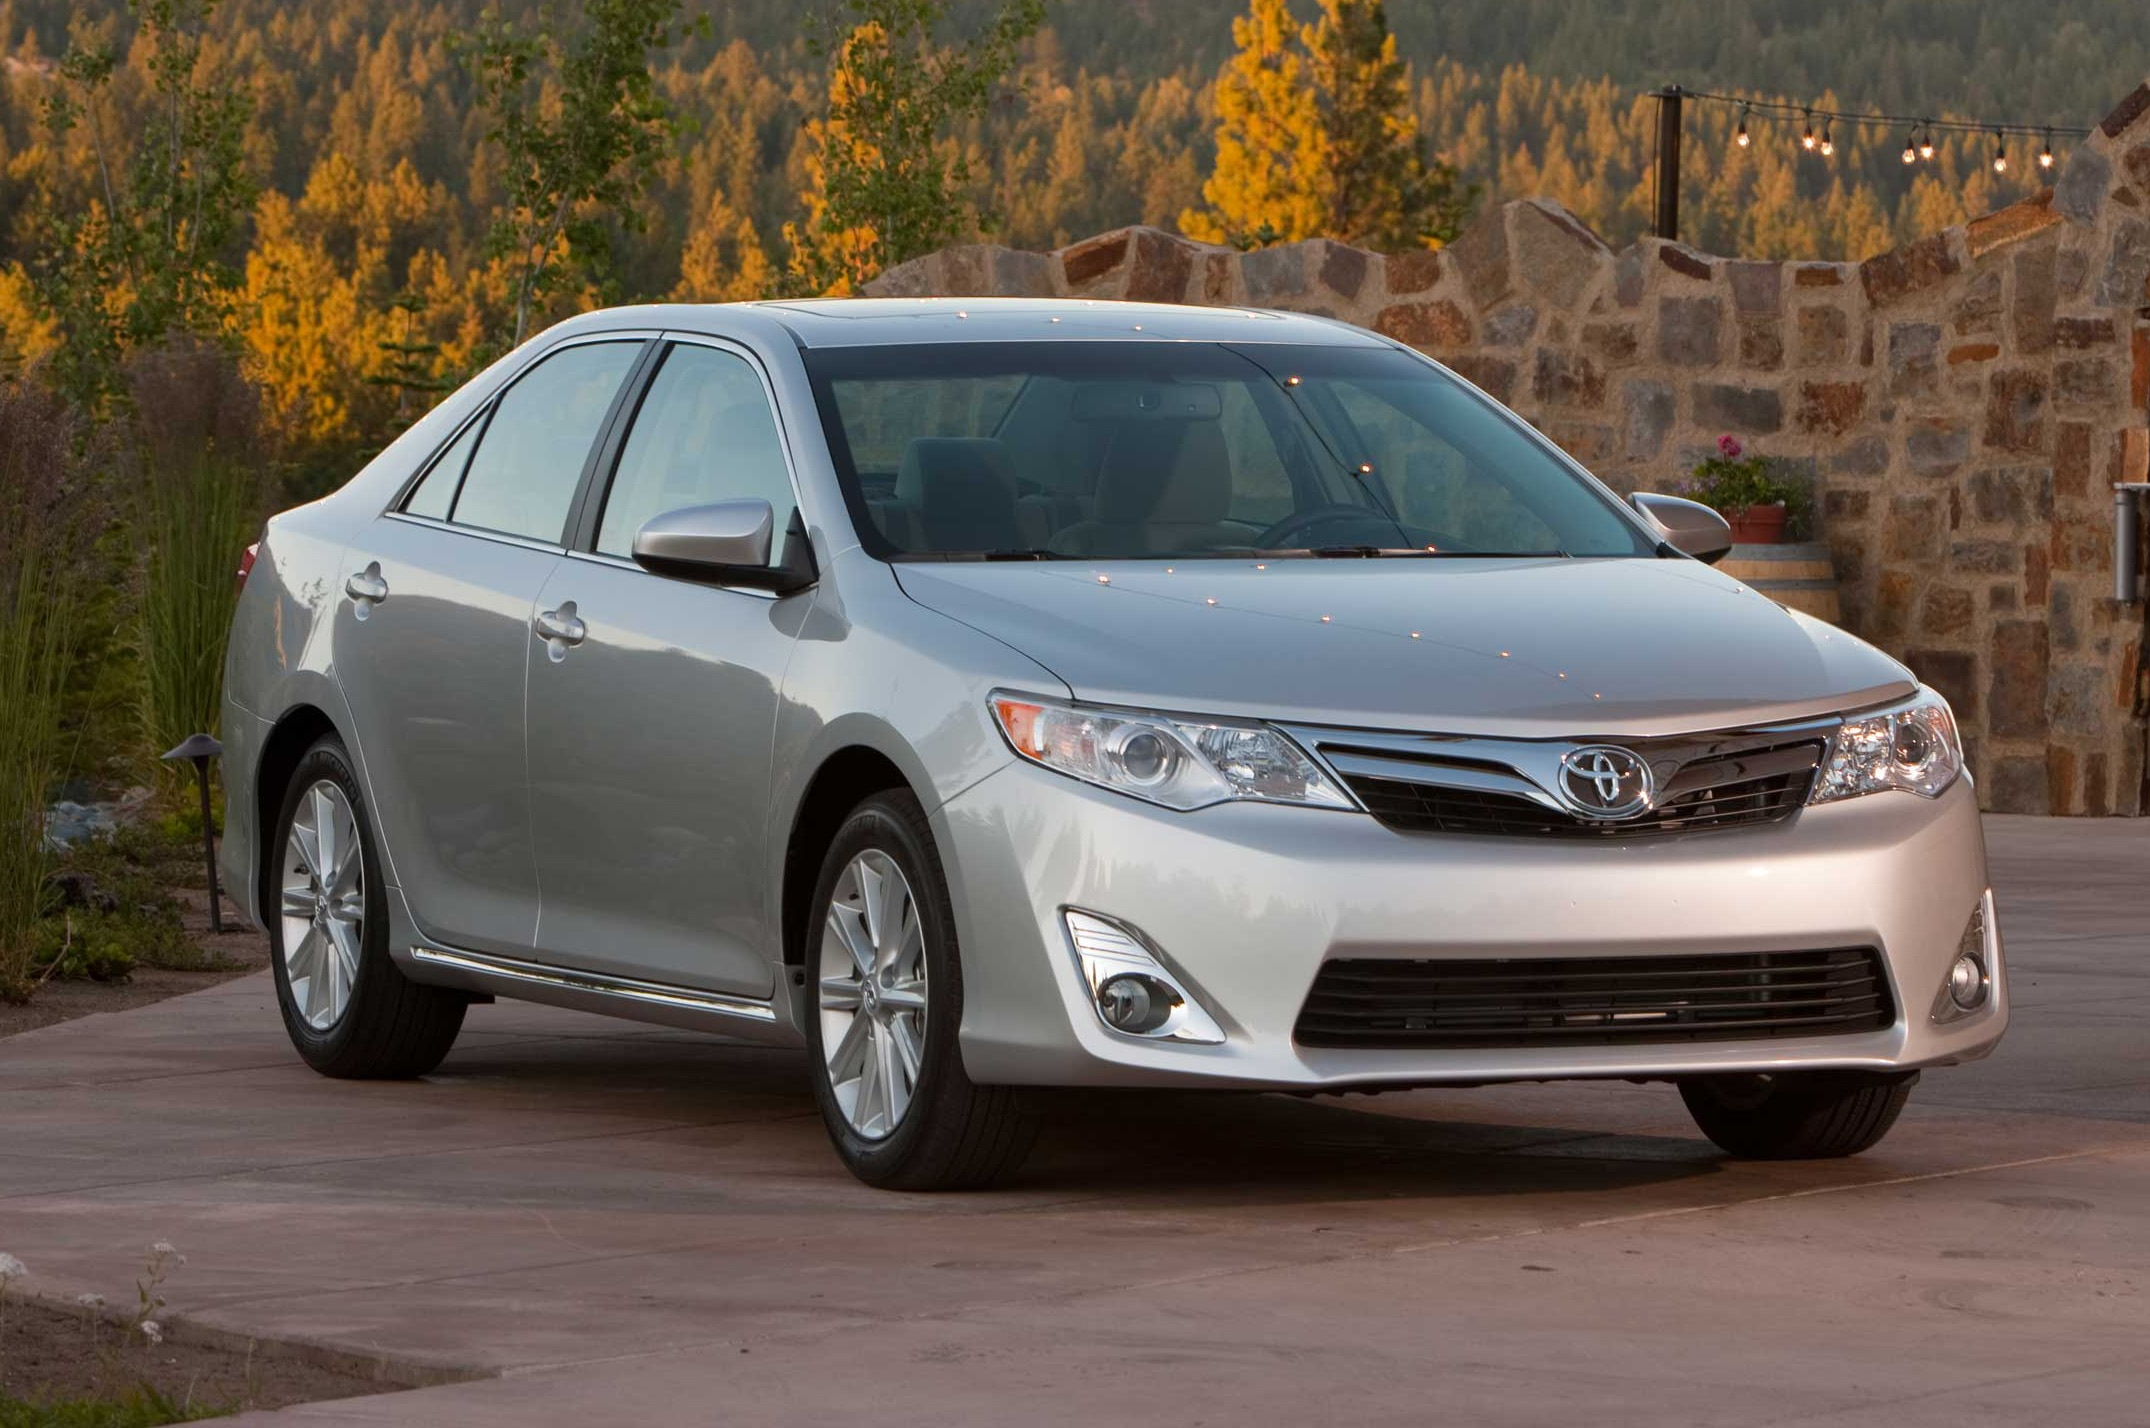 2014 Toyota Camry Front Three Quarters